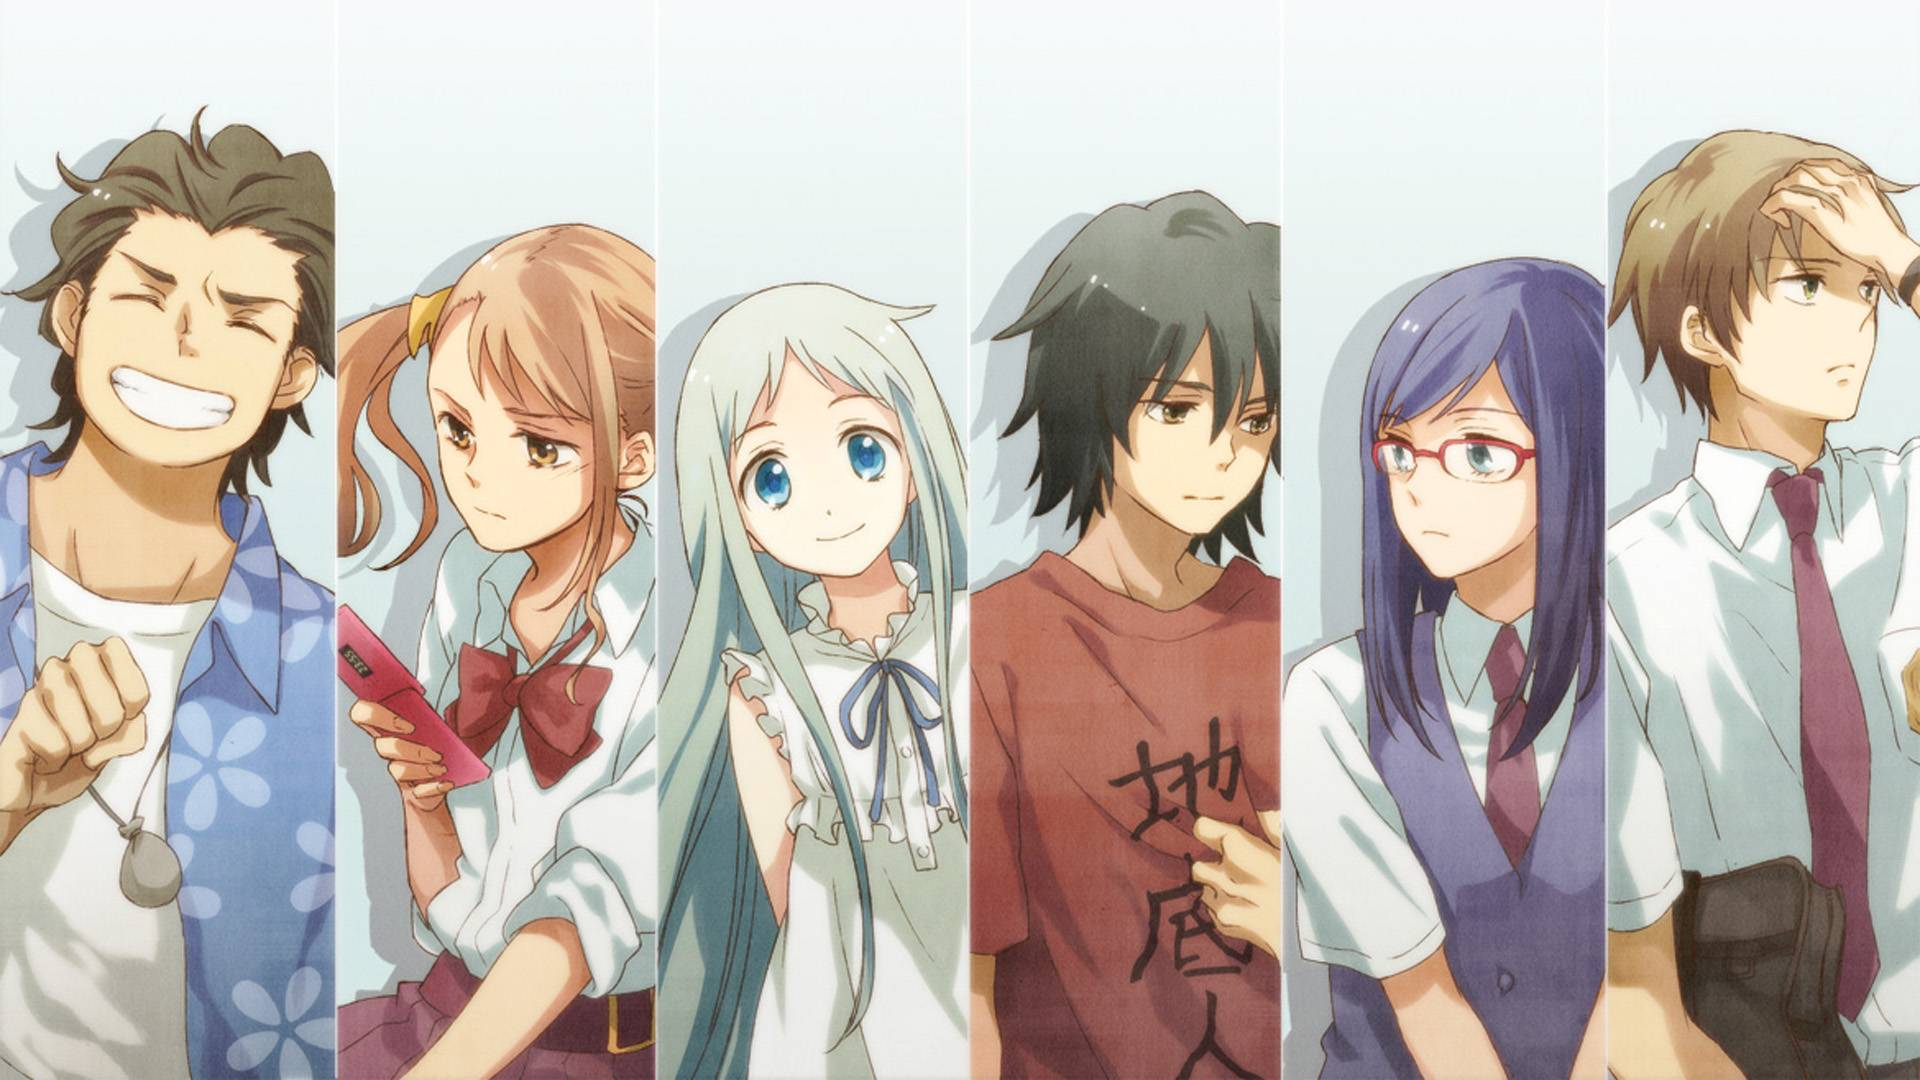 Emotional anime AnoHana- The Flower We Saw That Day